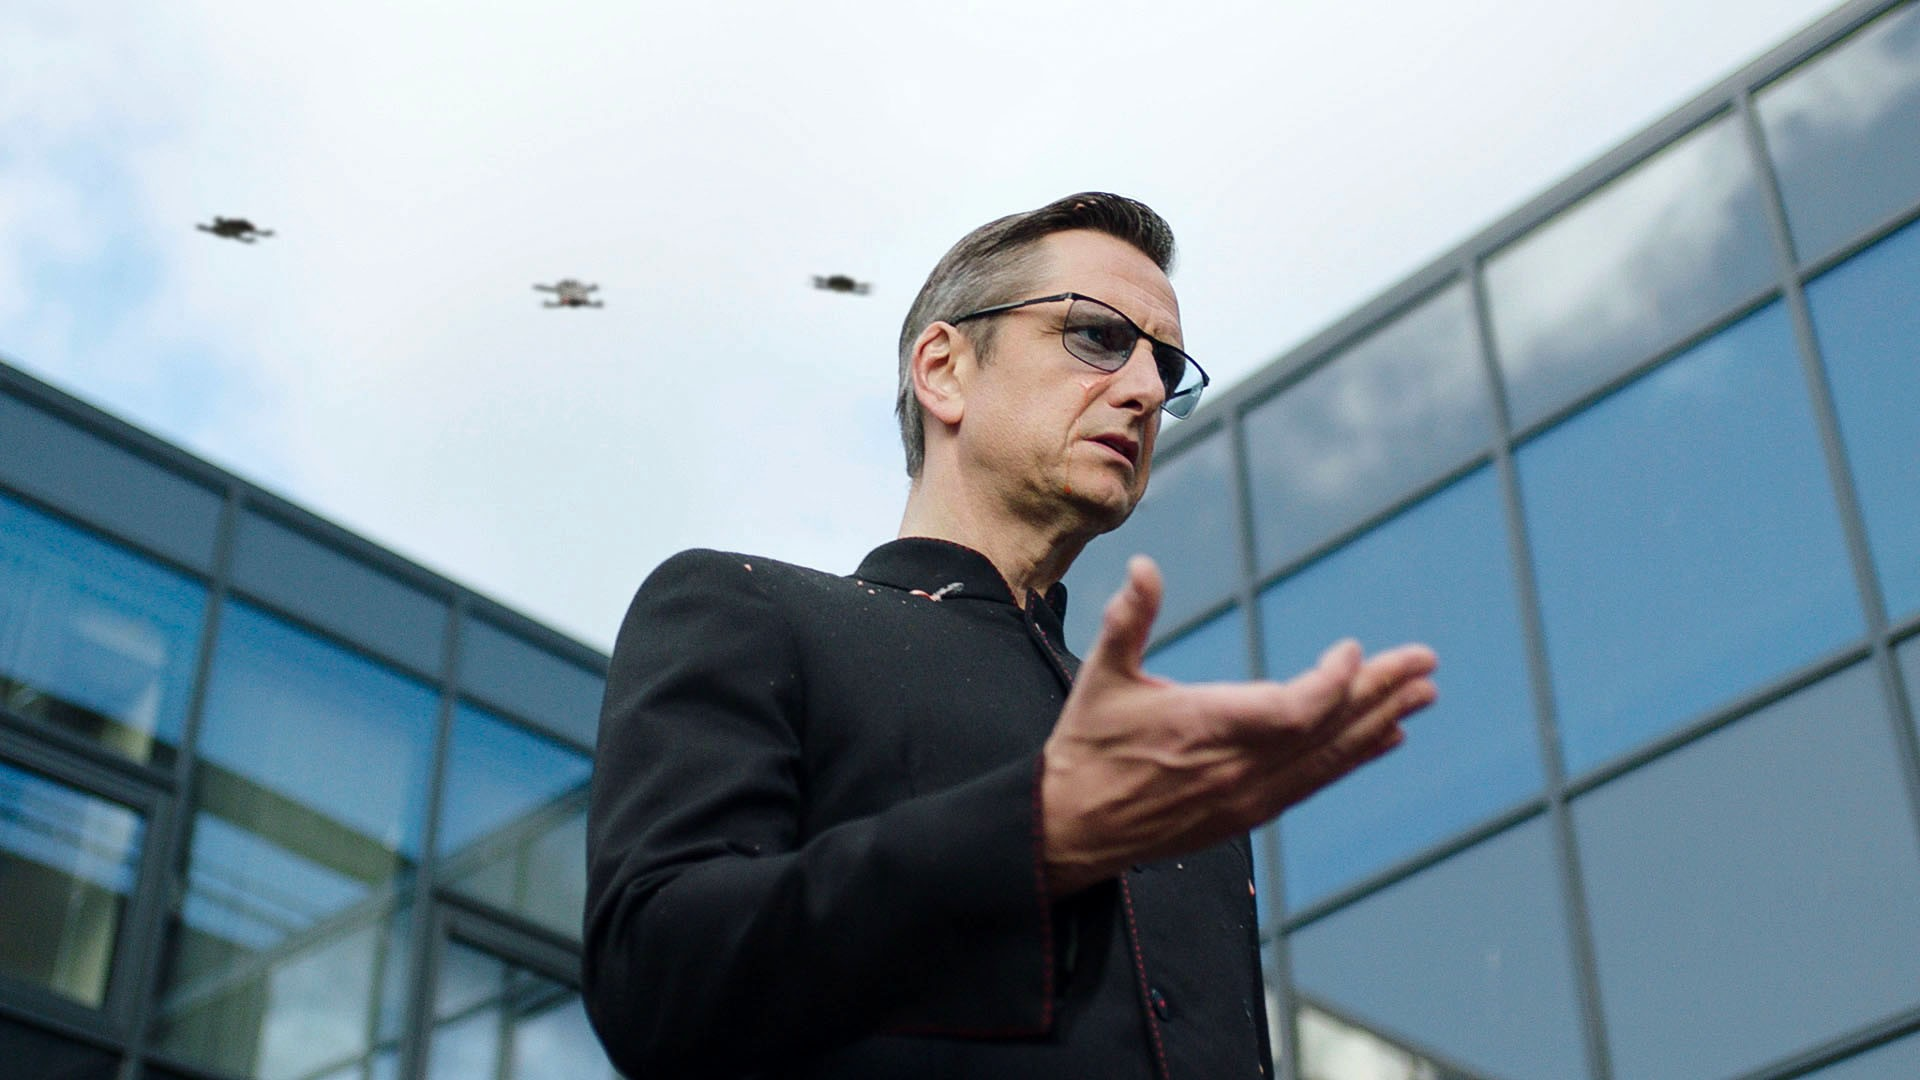 Programme Name: The Demon Headmaster - TX: 04/11/2019 - Episode: The Demon Headmaster - Ep 4 (No. 4) - Picture Shows: The Headmaster covered in Milkshake with Drones hovering behind The Headmaster (NICOLAS GLEAVES) - (C) BBC Studios - Photographer: n/a